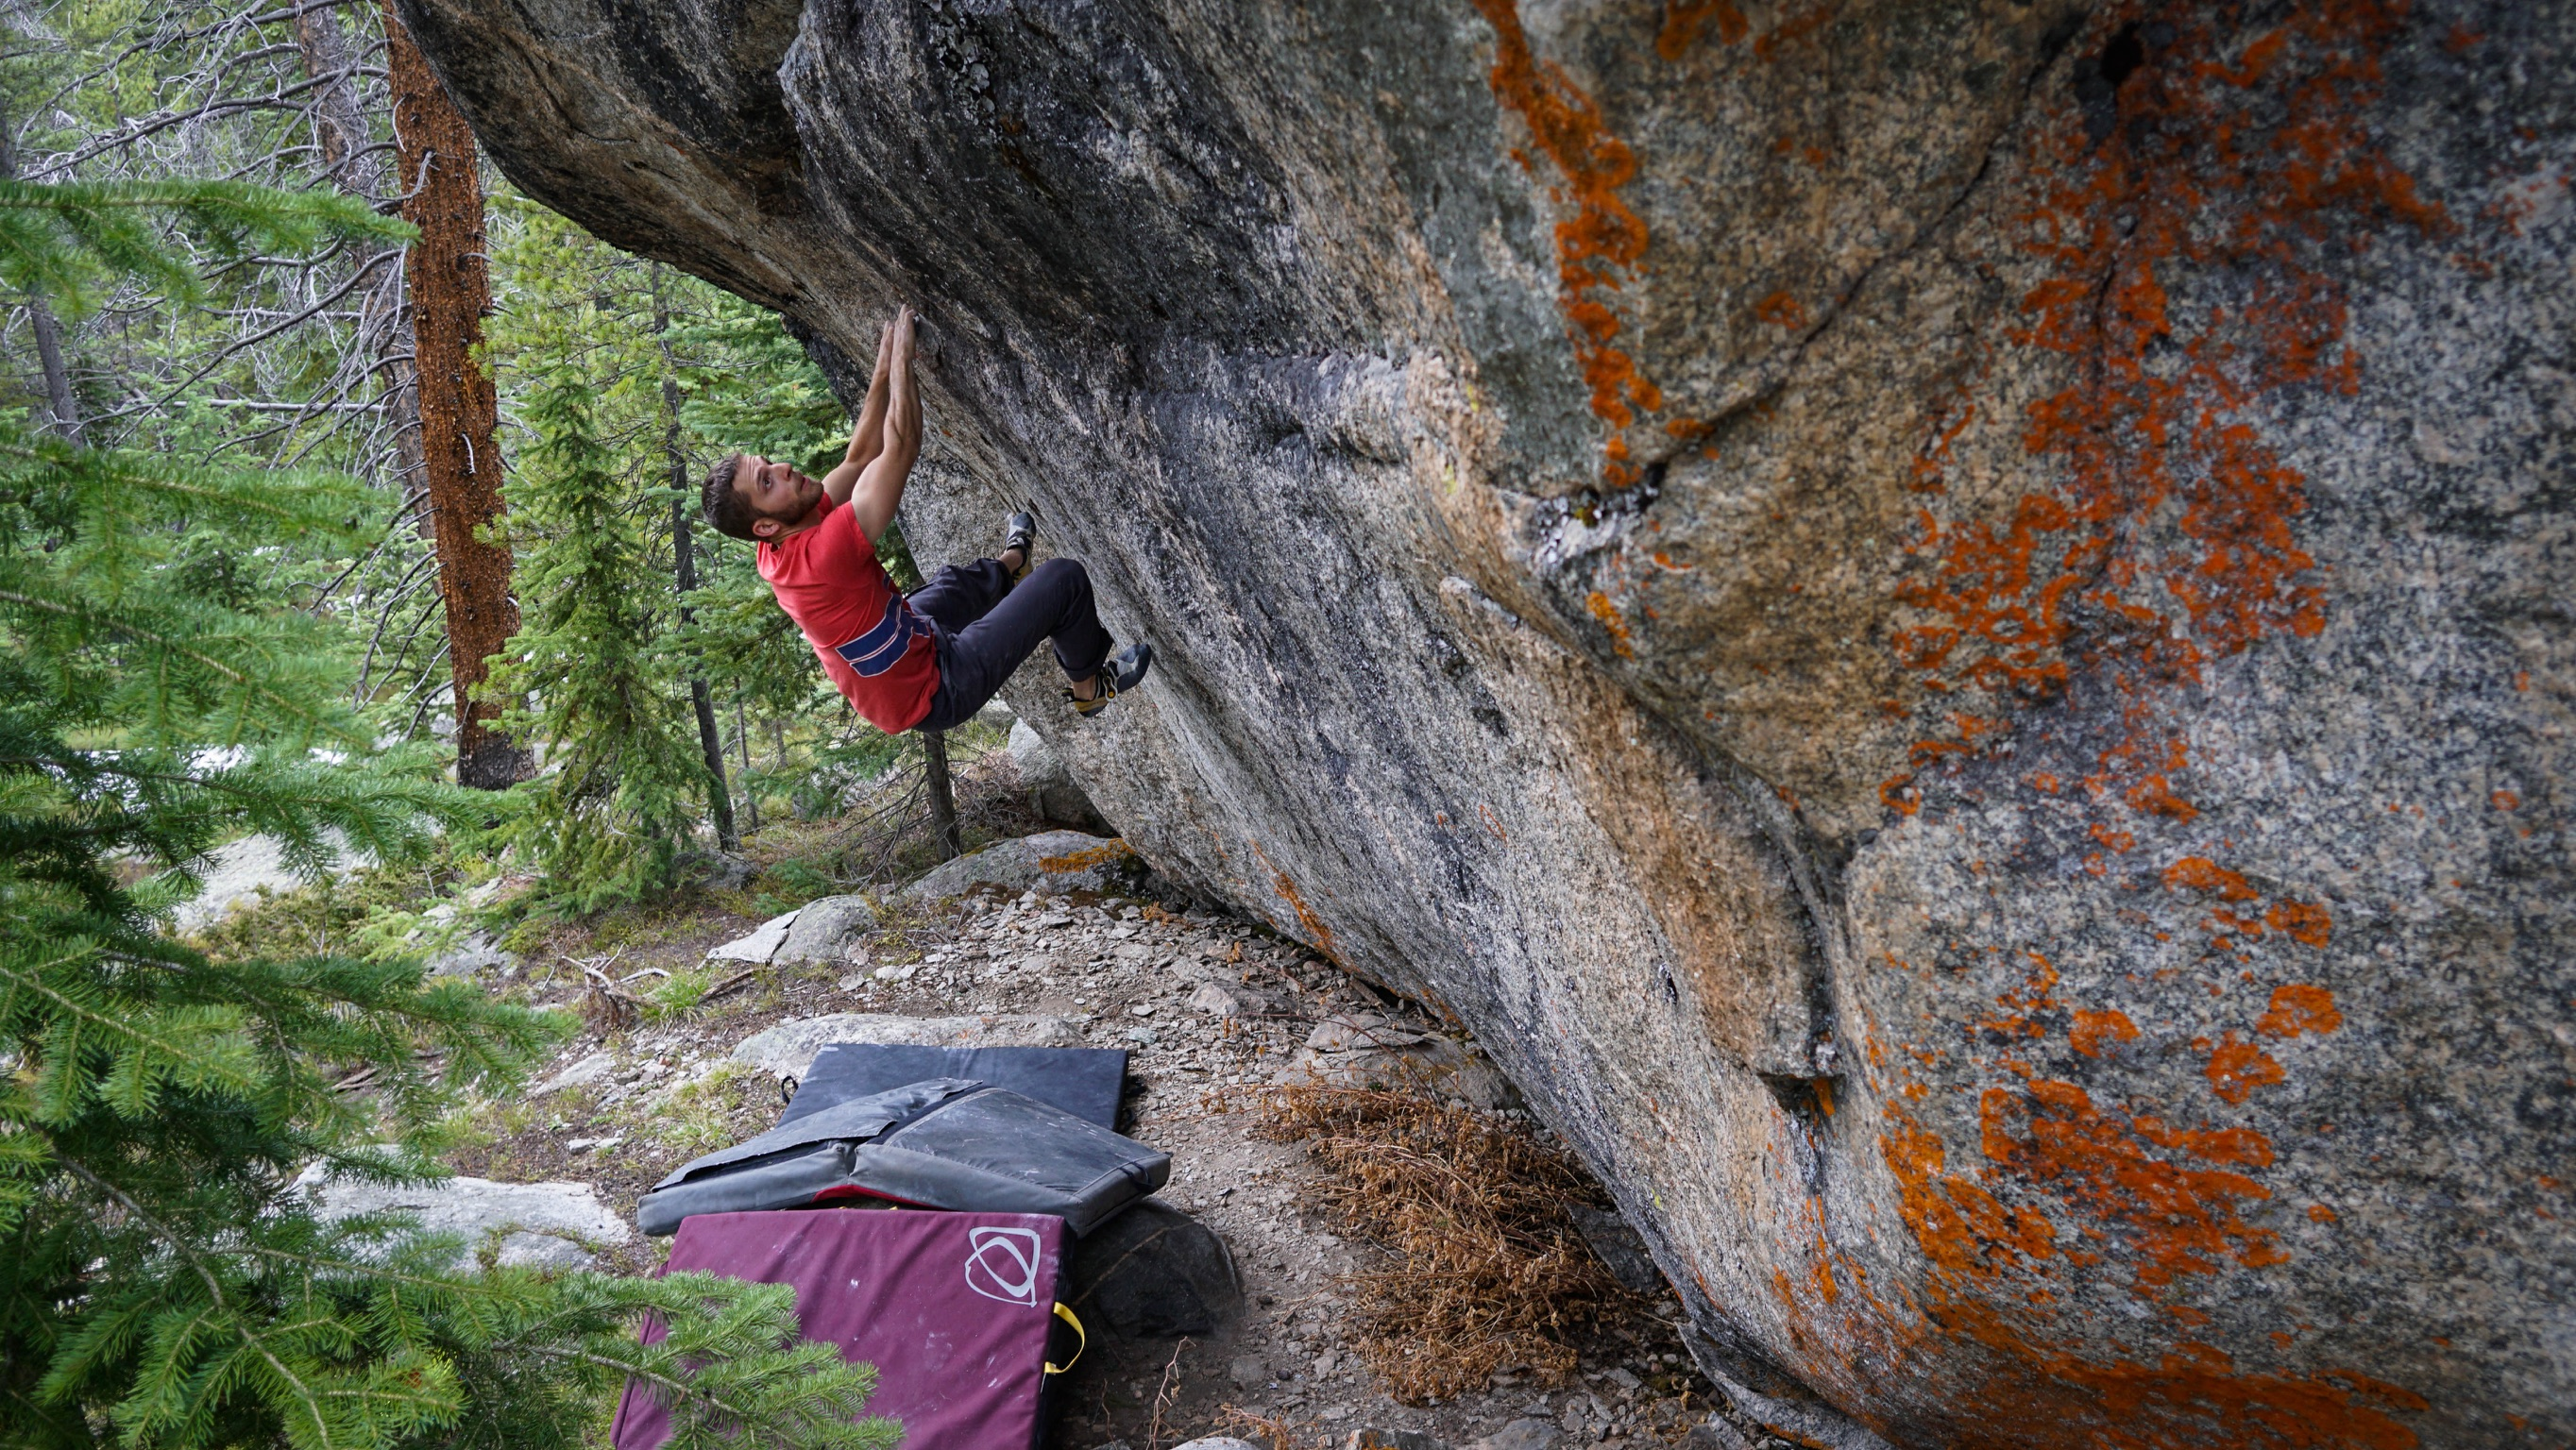 Connor Griffith climbing in the Indian Peaks, Colorado